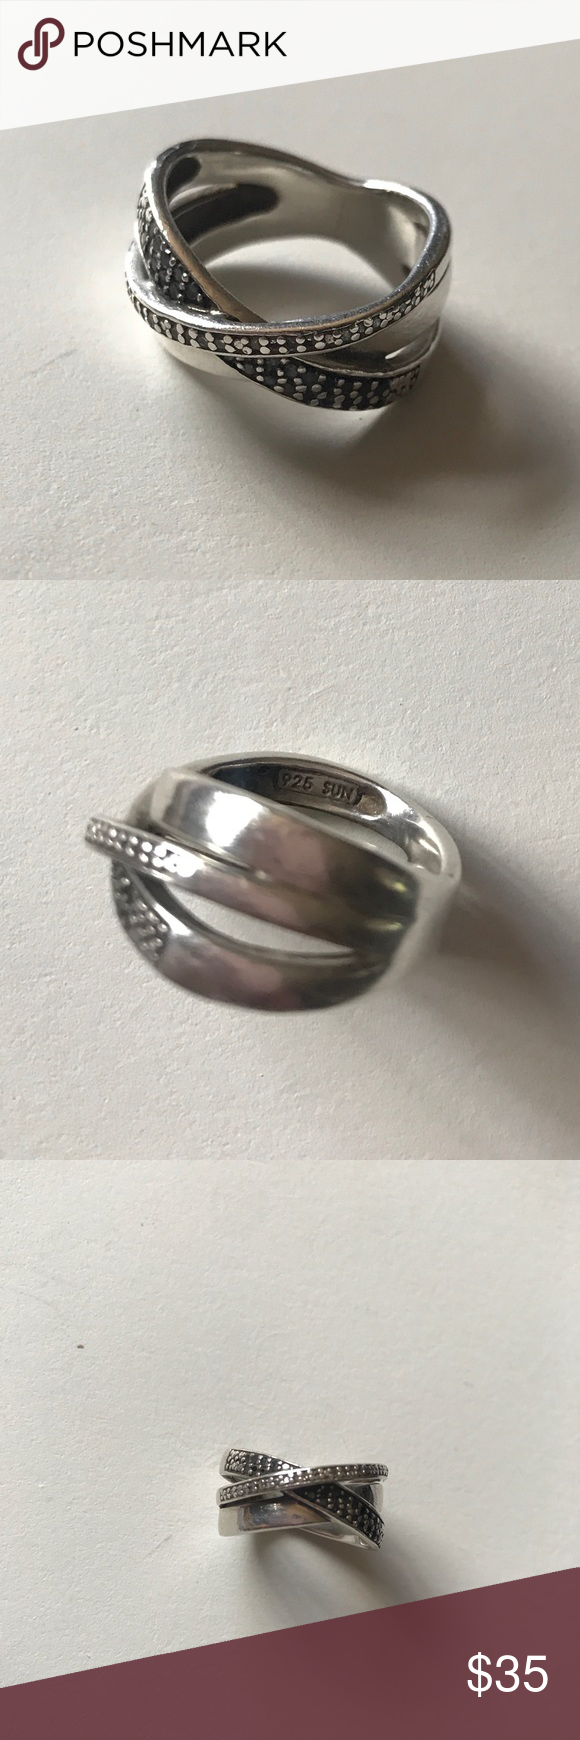 Kay Jewelers Ring 925 SUN Stamp From Jay About A Size 5 6 Jewelry Rings